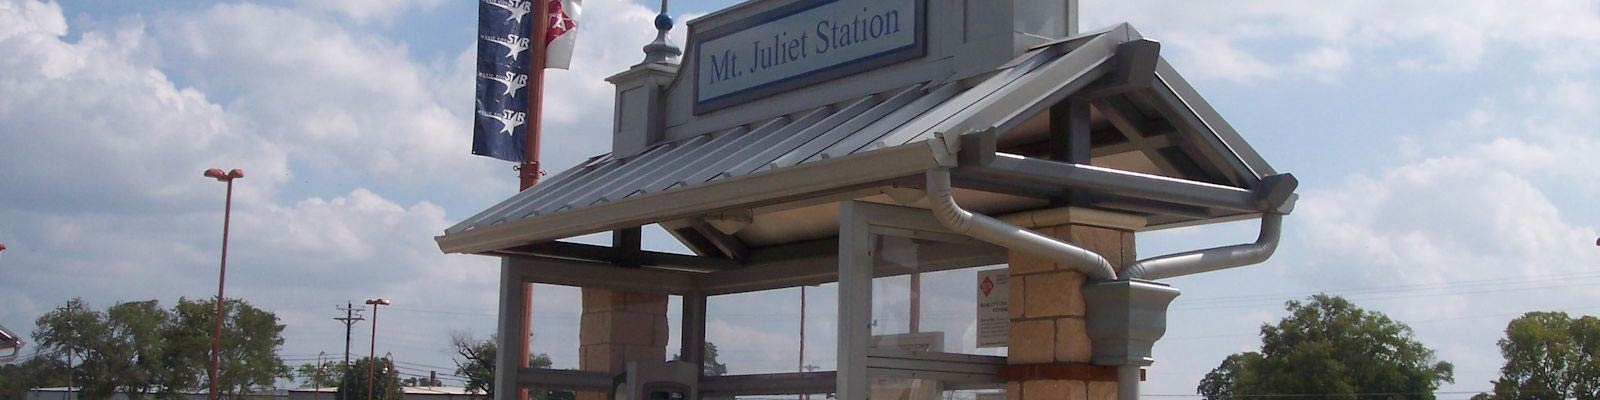 std-header_mj-train-station.jpg